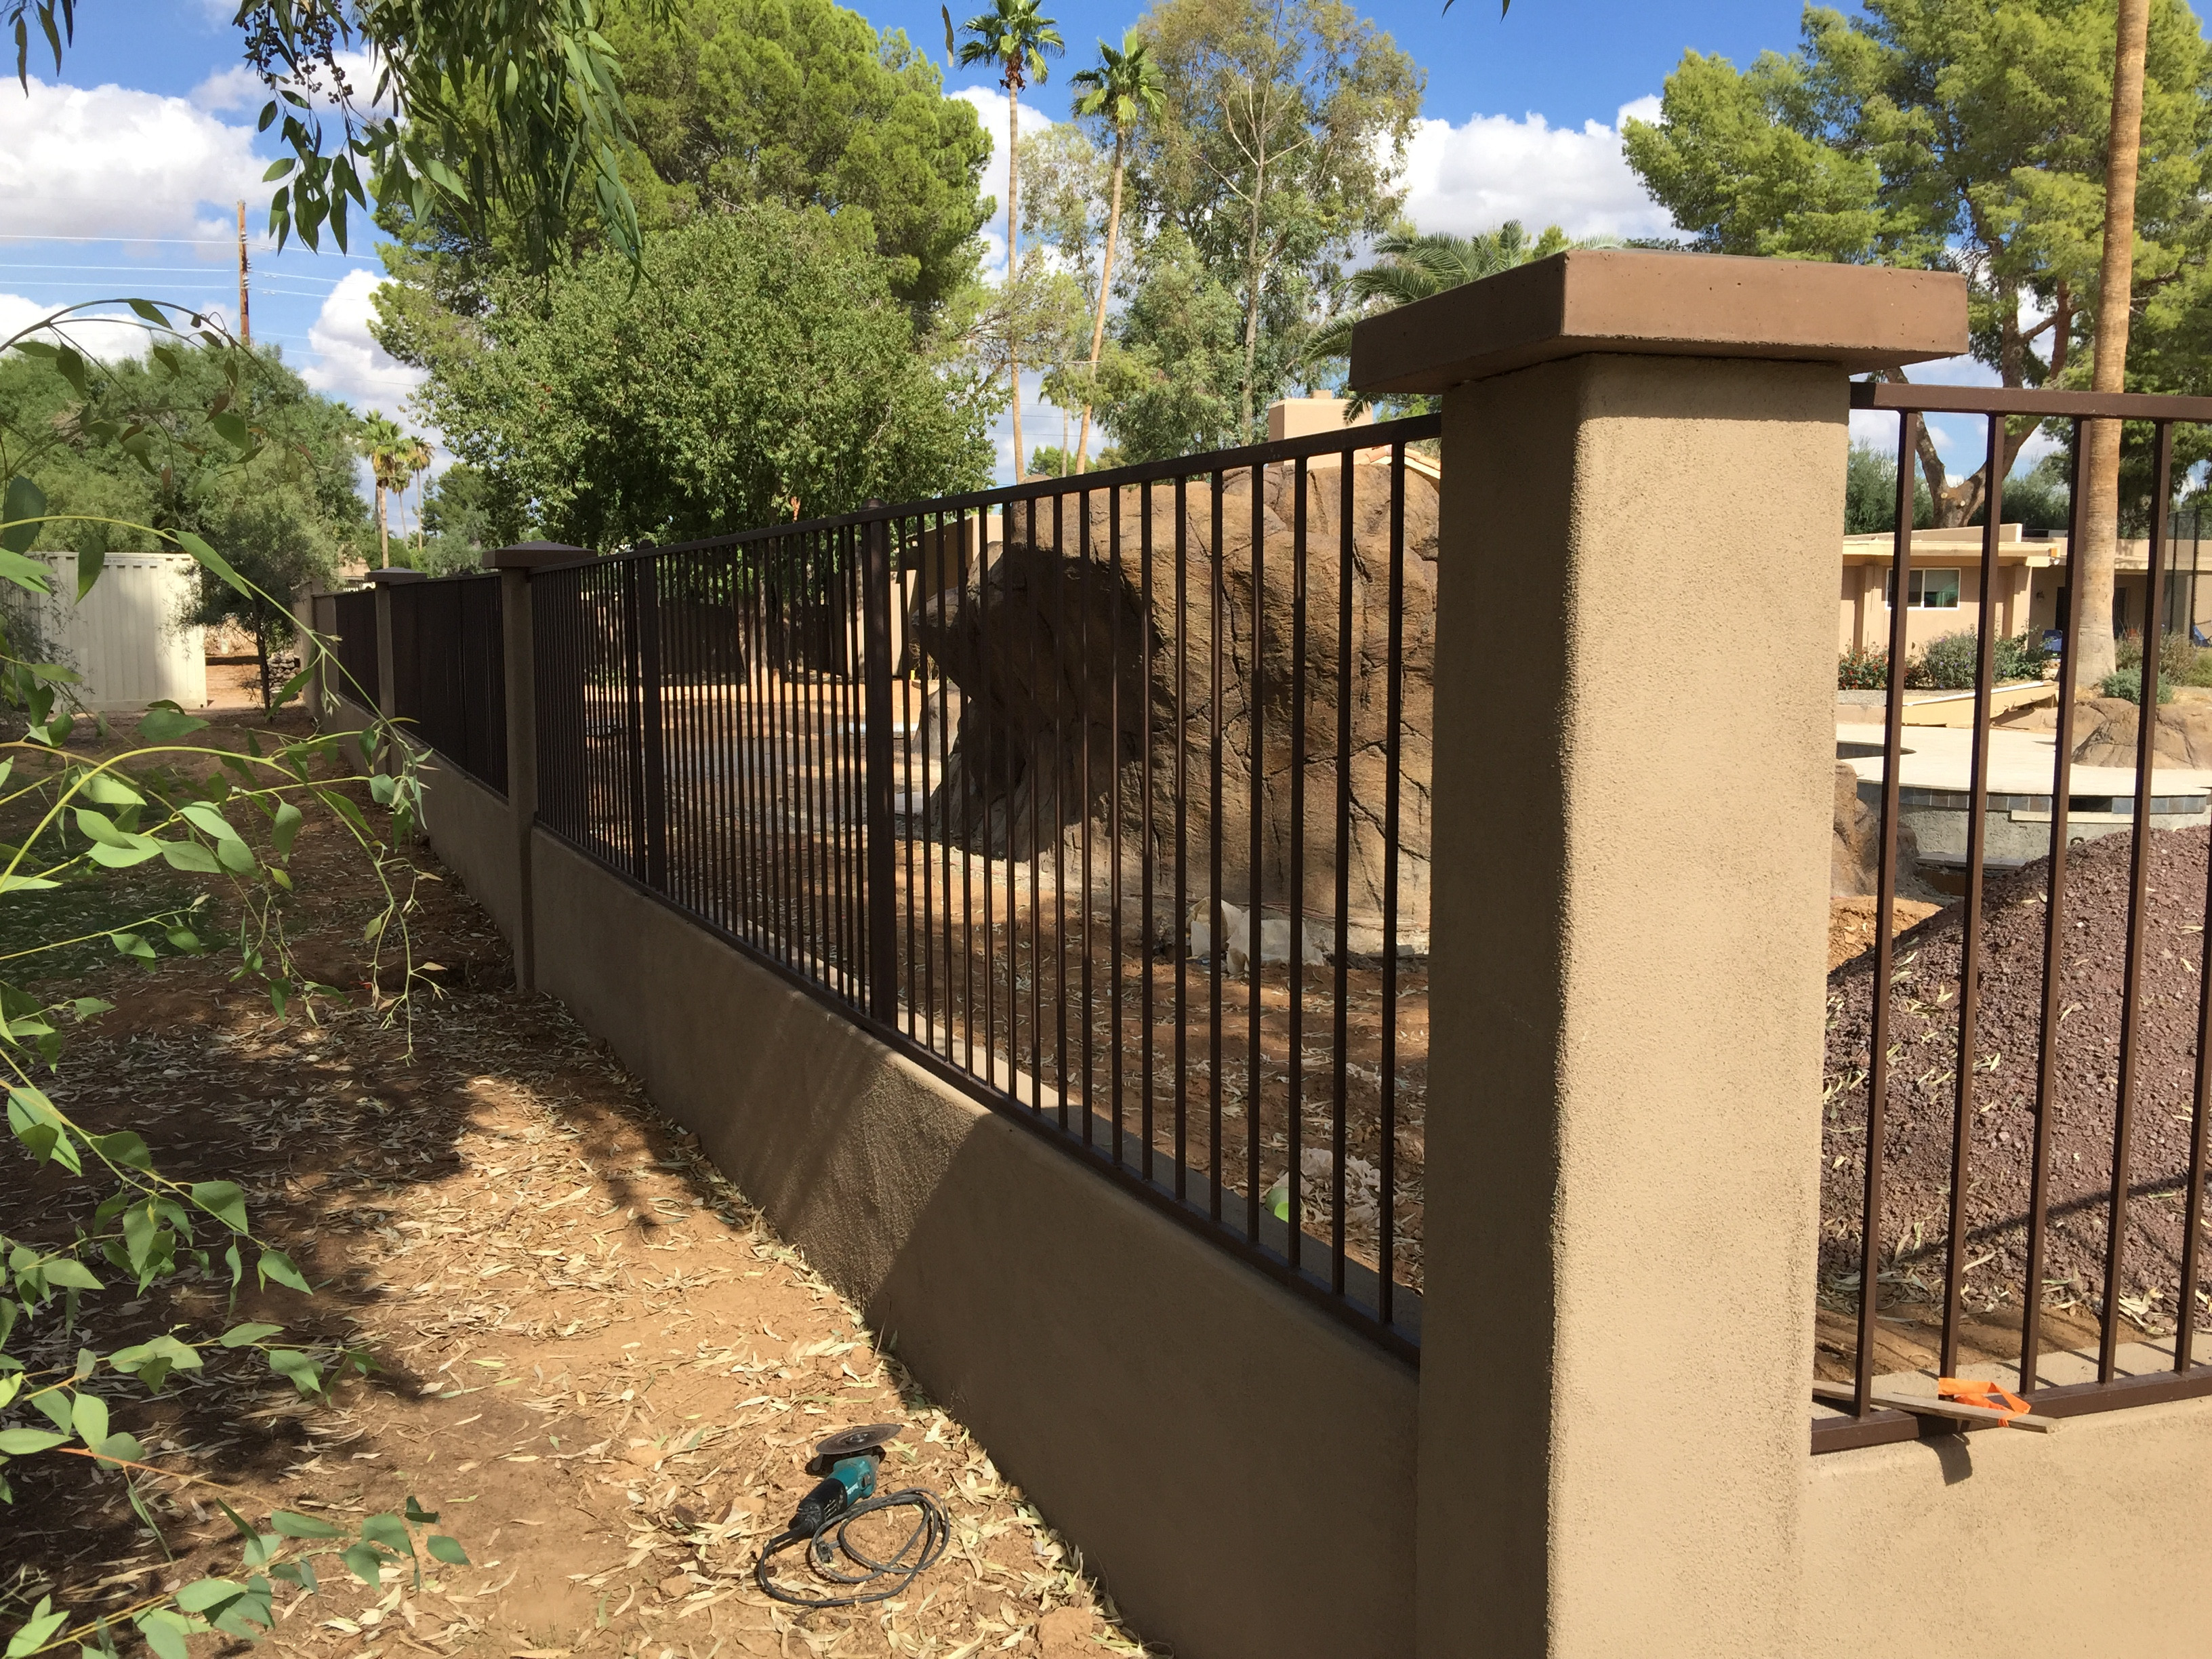 Paint Wall With Chain Link Fence Paint